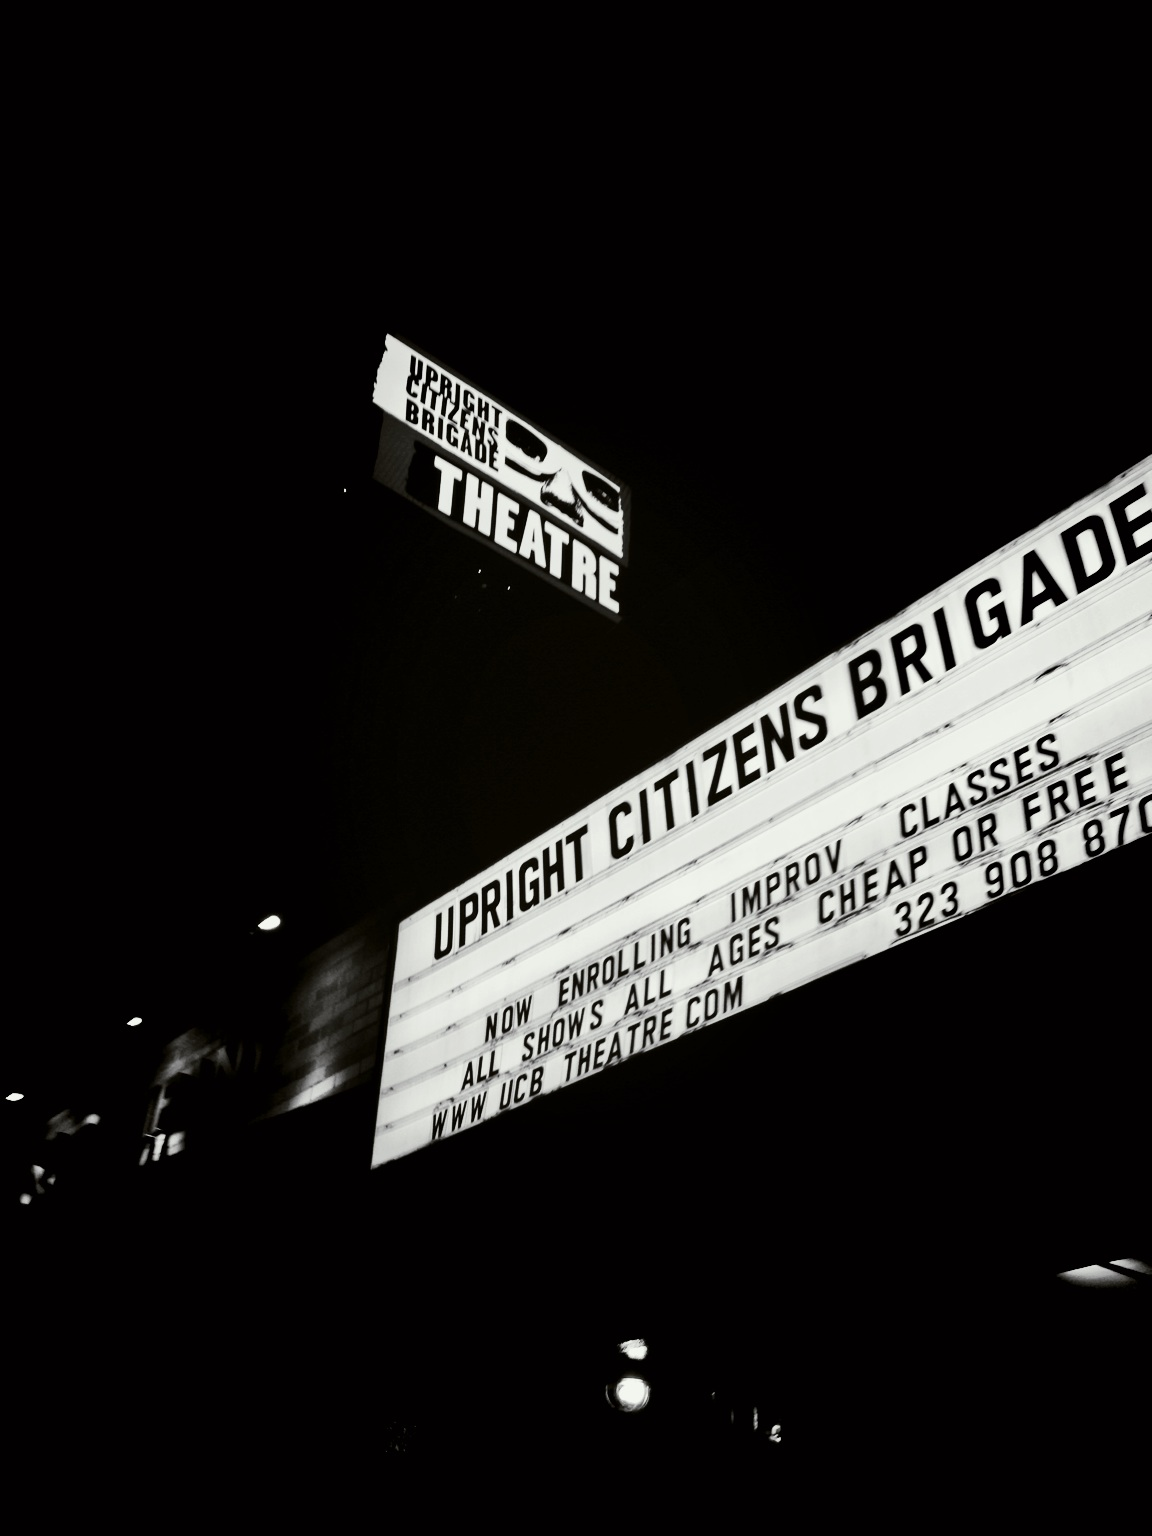 Showtime! W @myqkaplan and @heyitsliam. #NewYorkersInLA at Upright Citizens Brigade – View on Path.